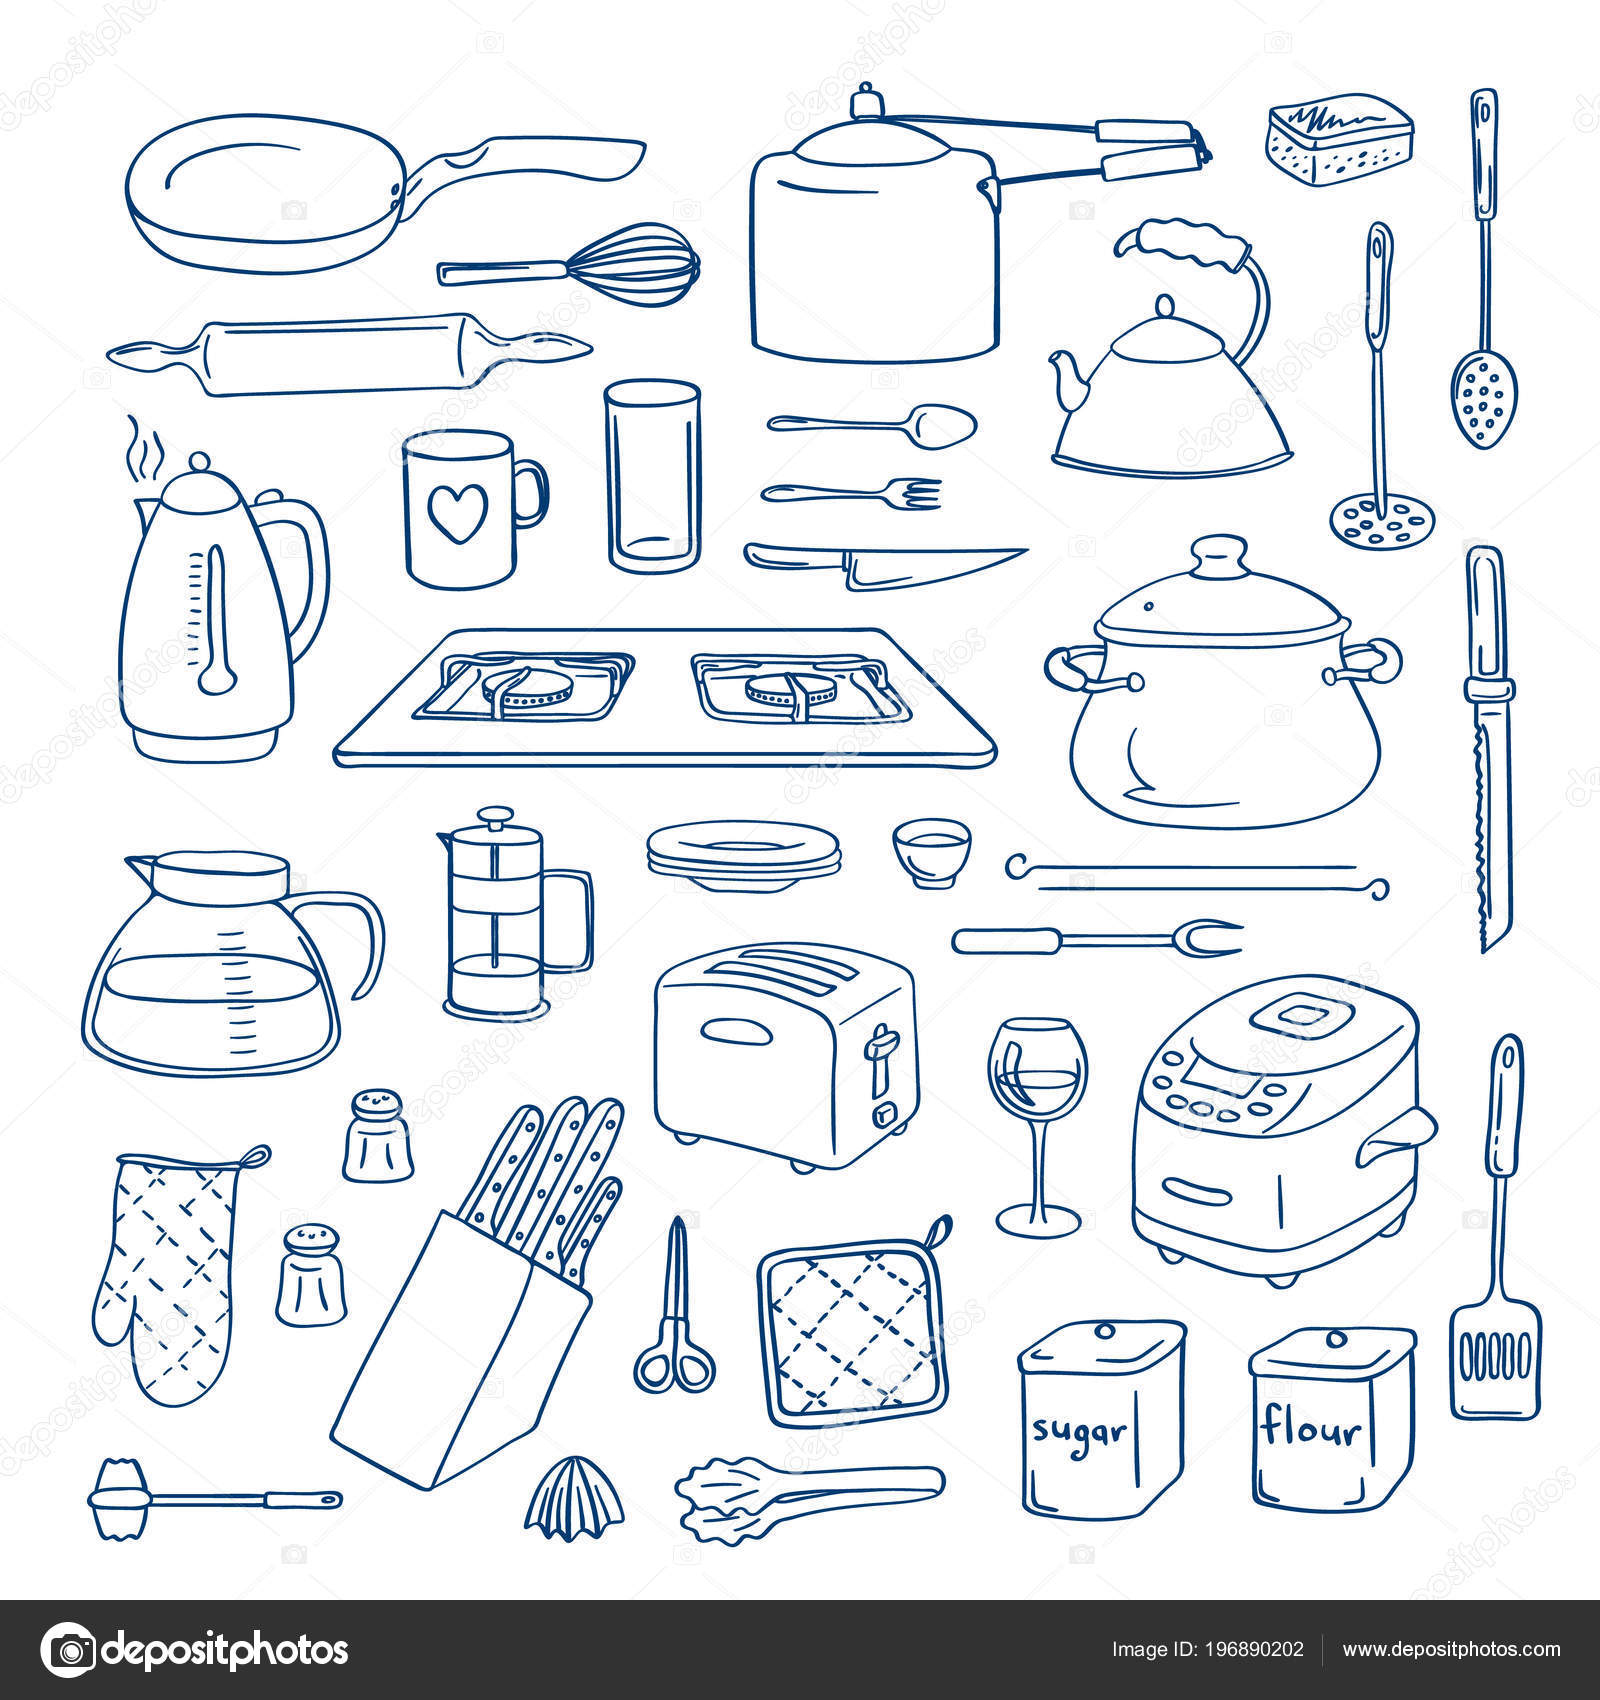 Vector Hand Drawn Kitchen Utensils Doodle Icons Set